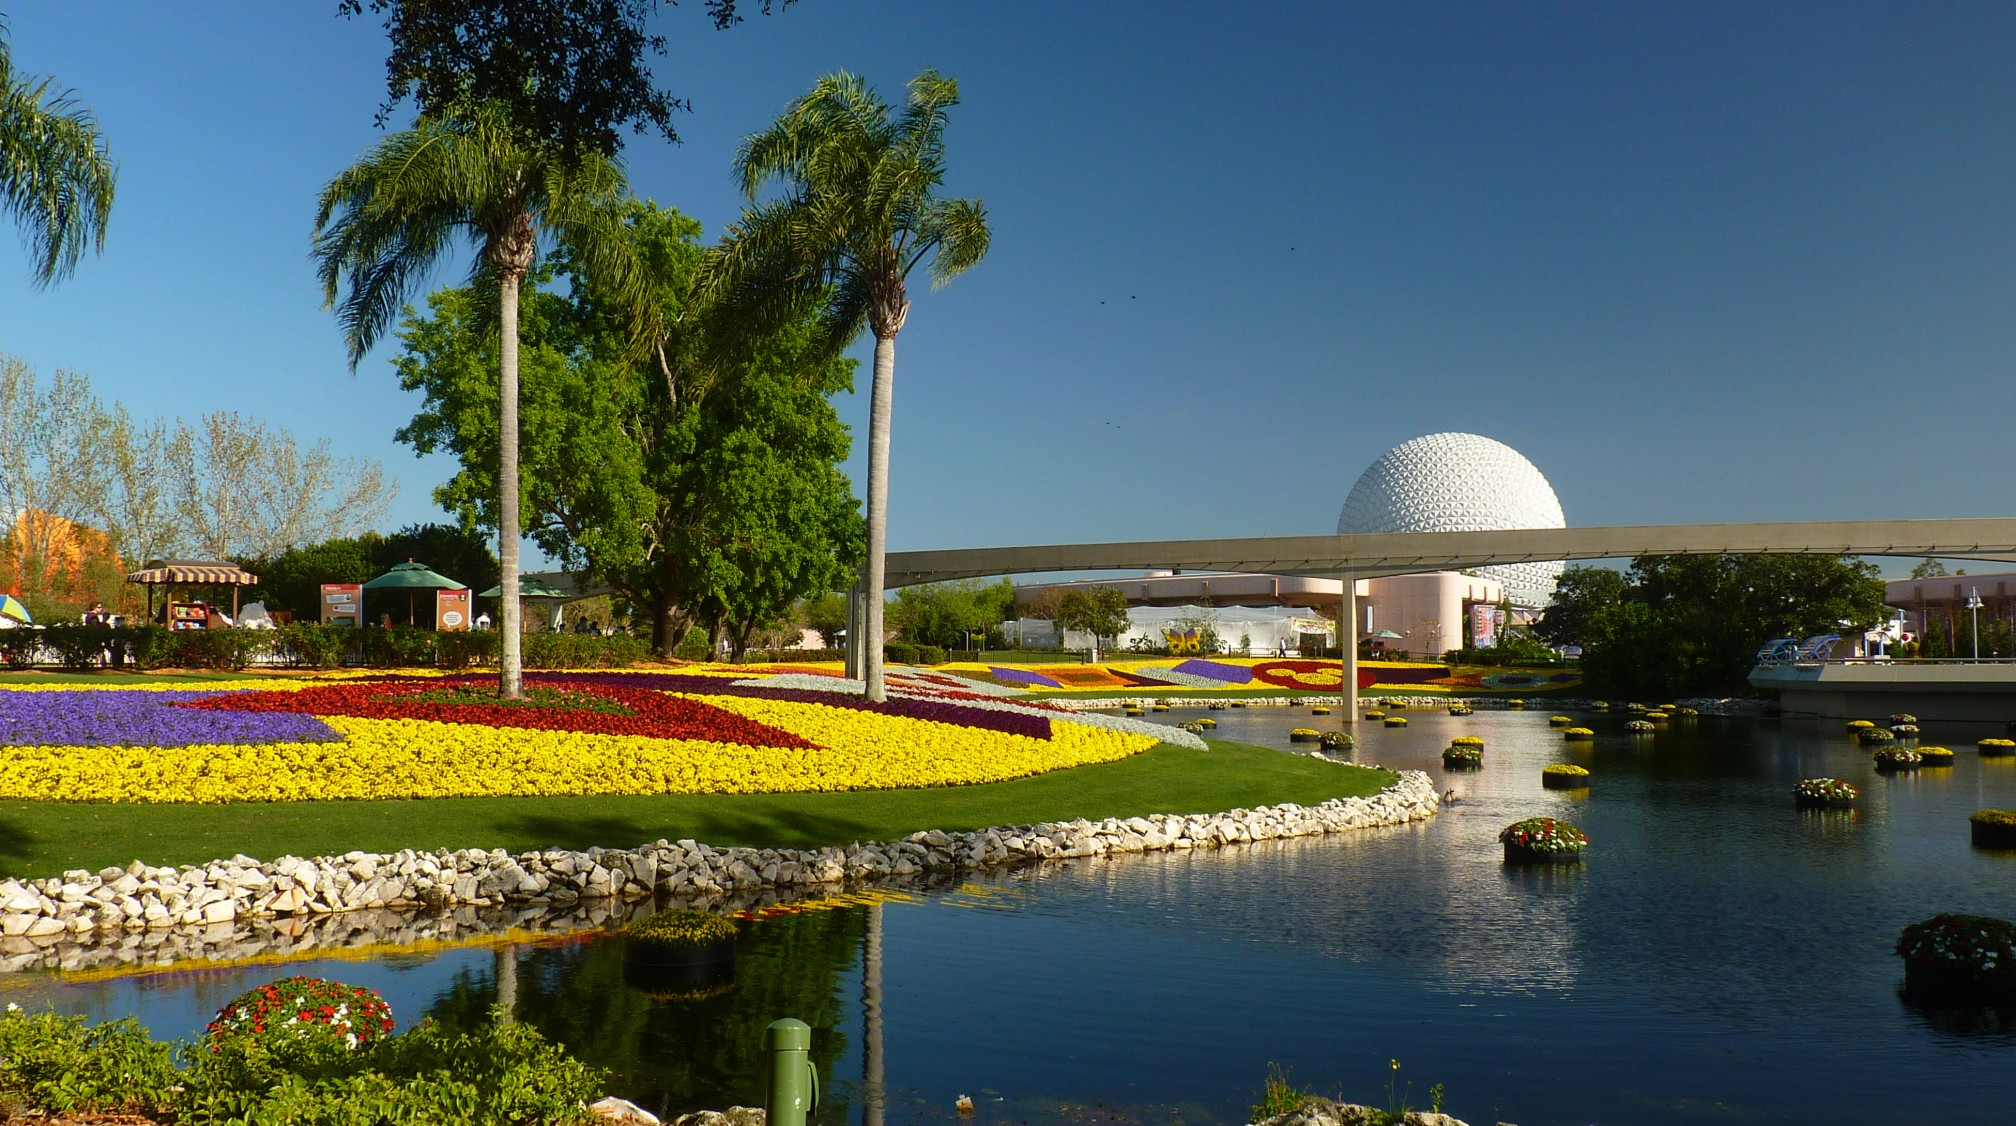 Jud's Disney Picture of the Day: FLOWER & GARDEN VIEW